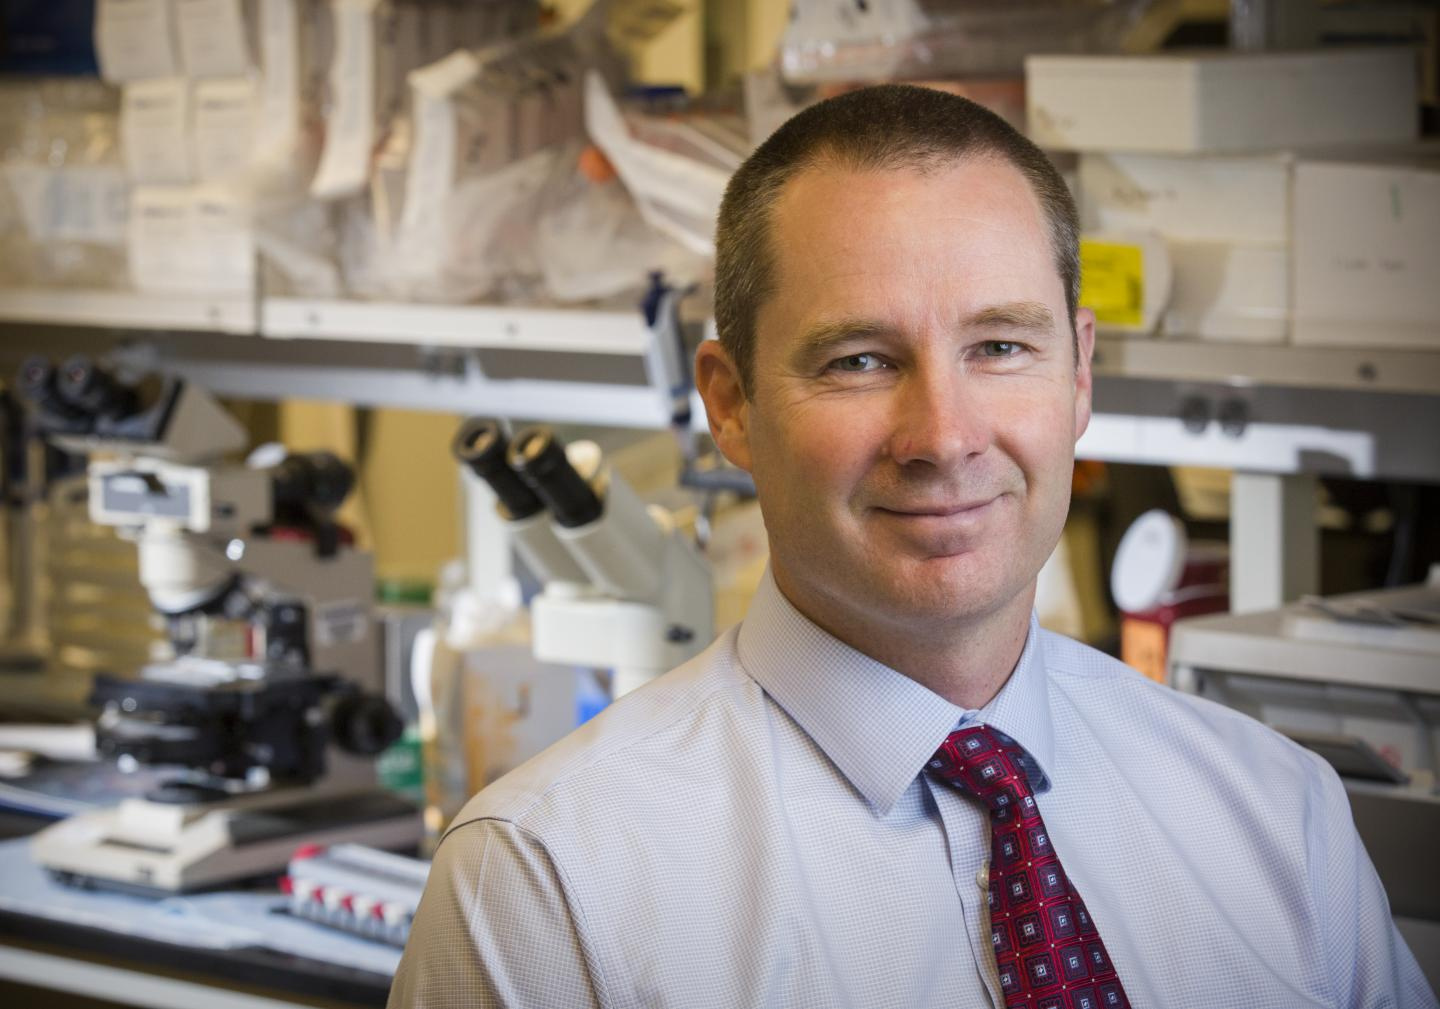 Dr. Cameron Turtle, Fred Hutchinson Cancer Research Center